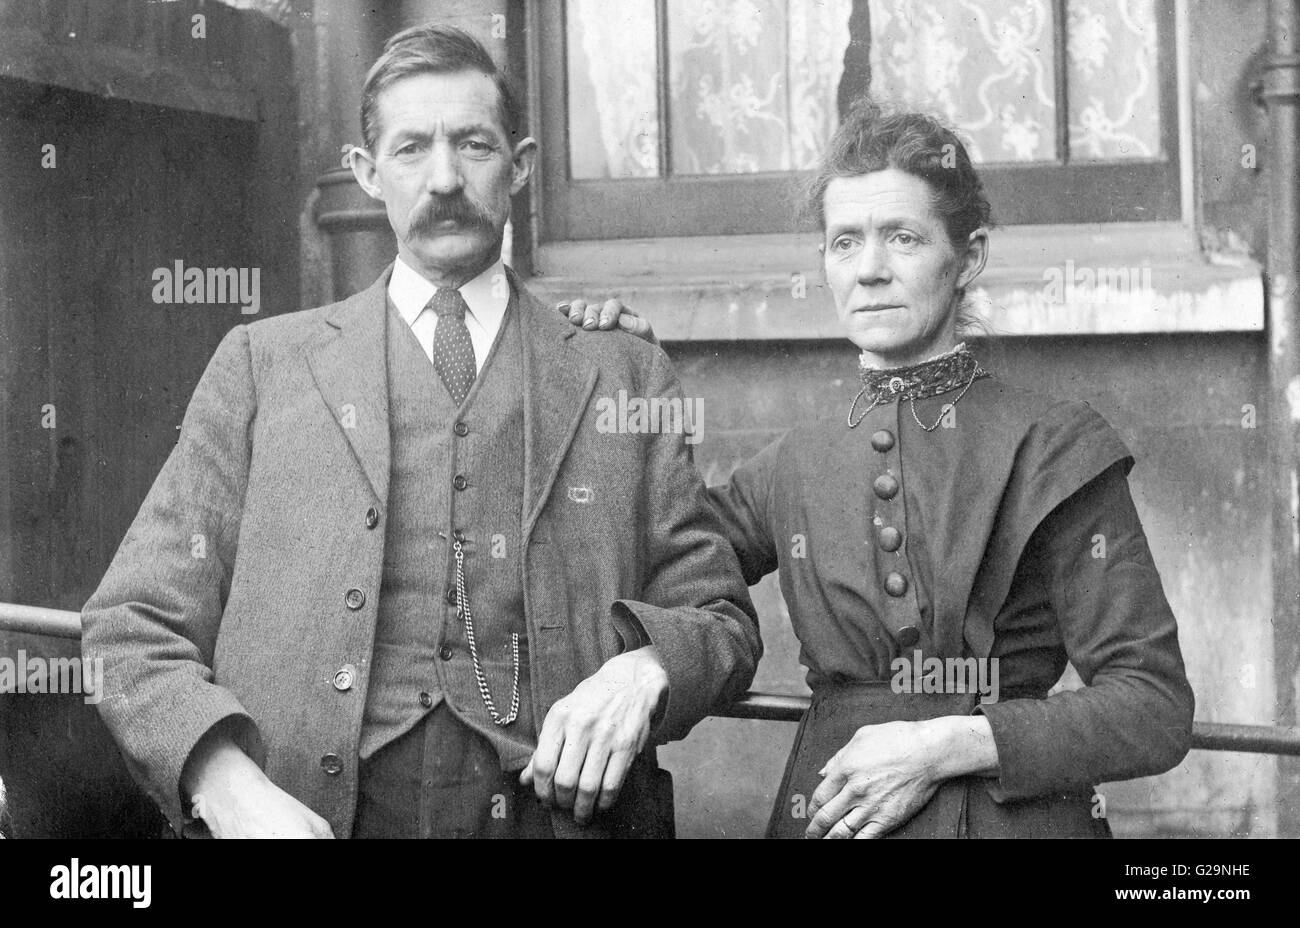 England, 1927. Black and white portrait of middle aged couple posing, facing viewer. Man with moustache, suit, waistcoat - Stock Image